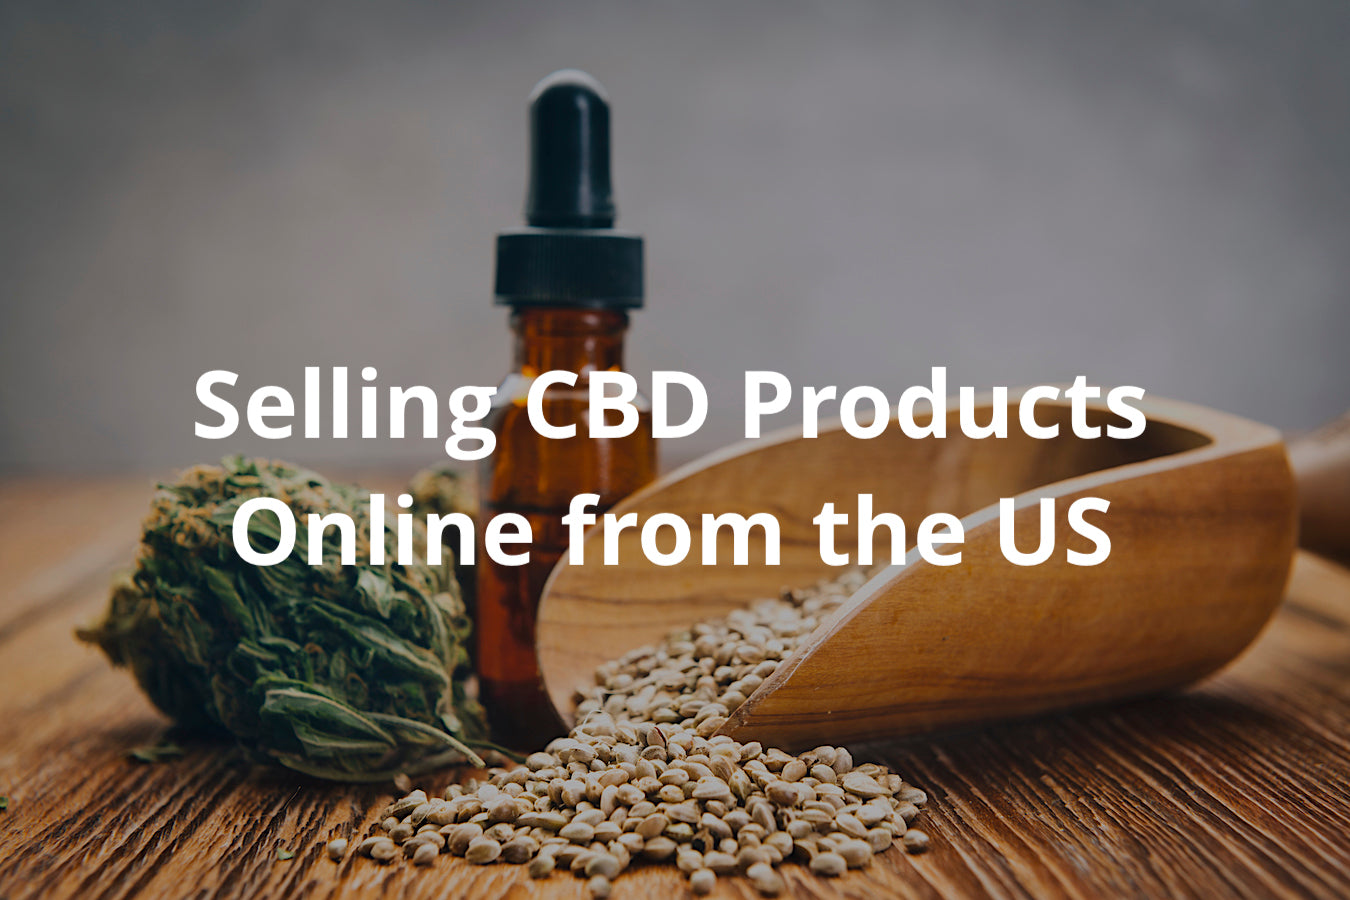 Selling CBD Products Online from the US